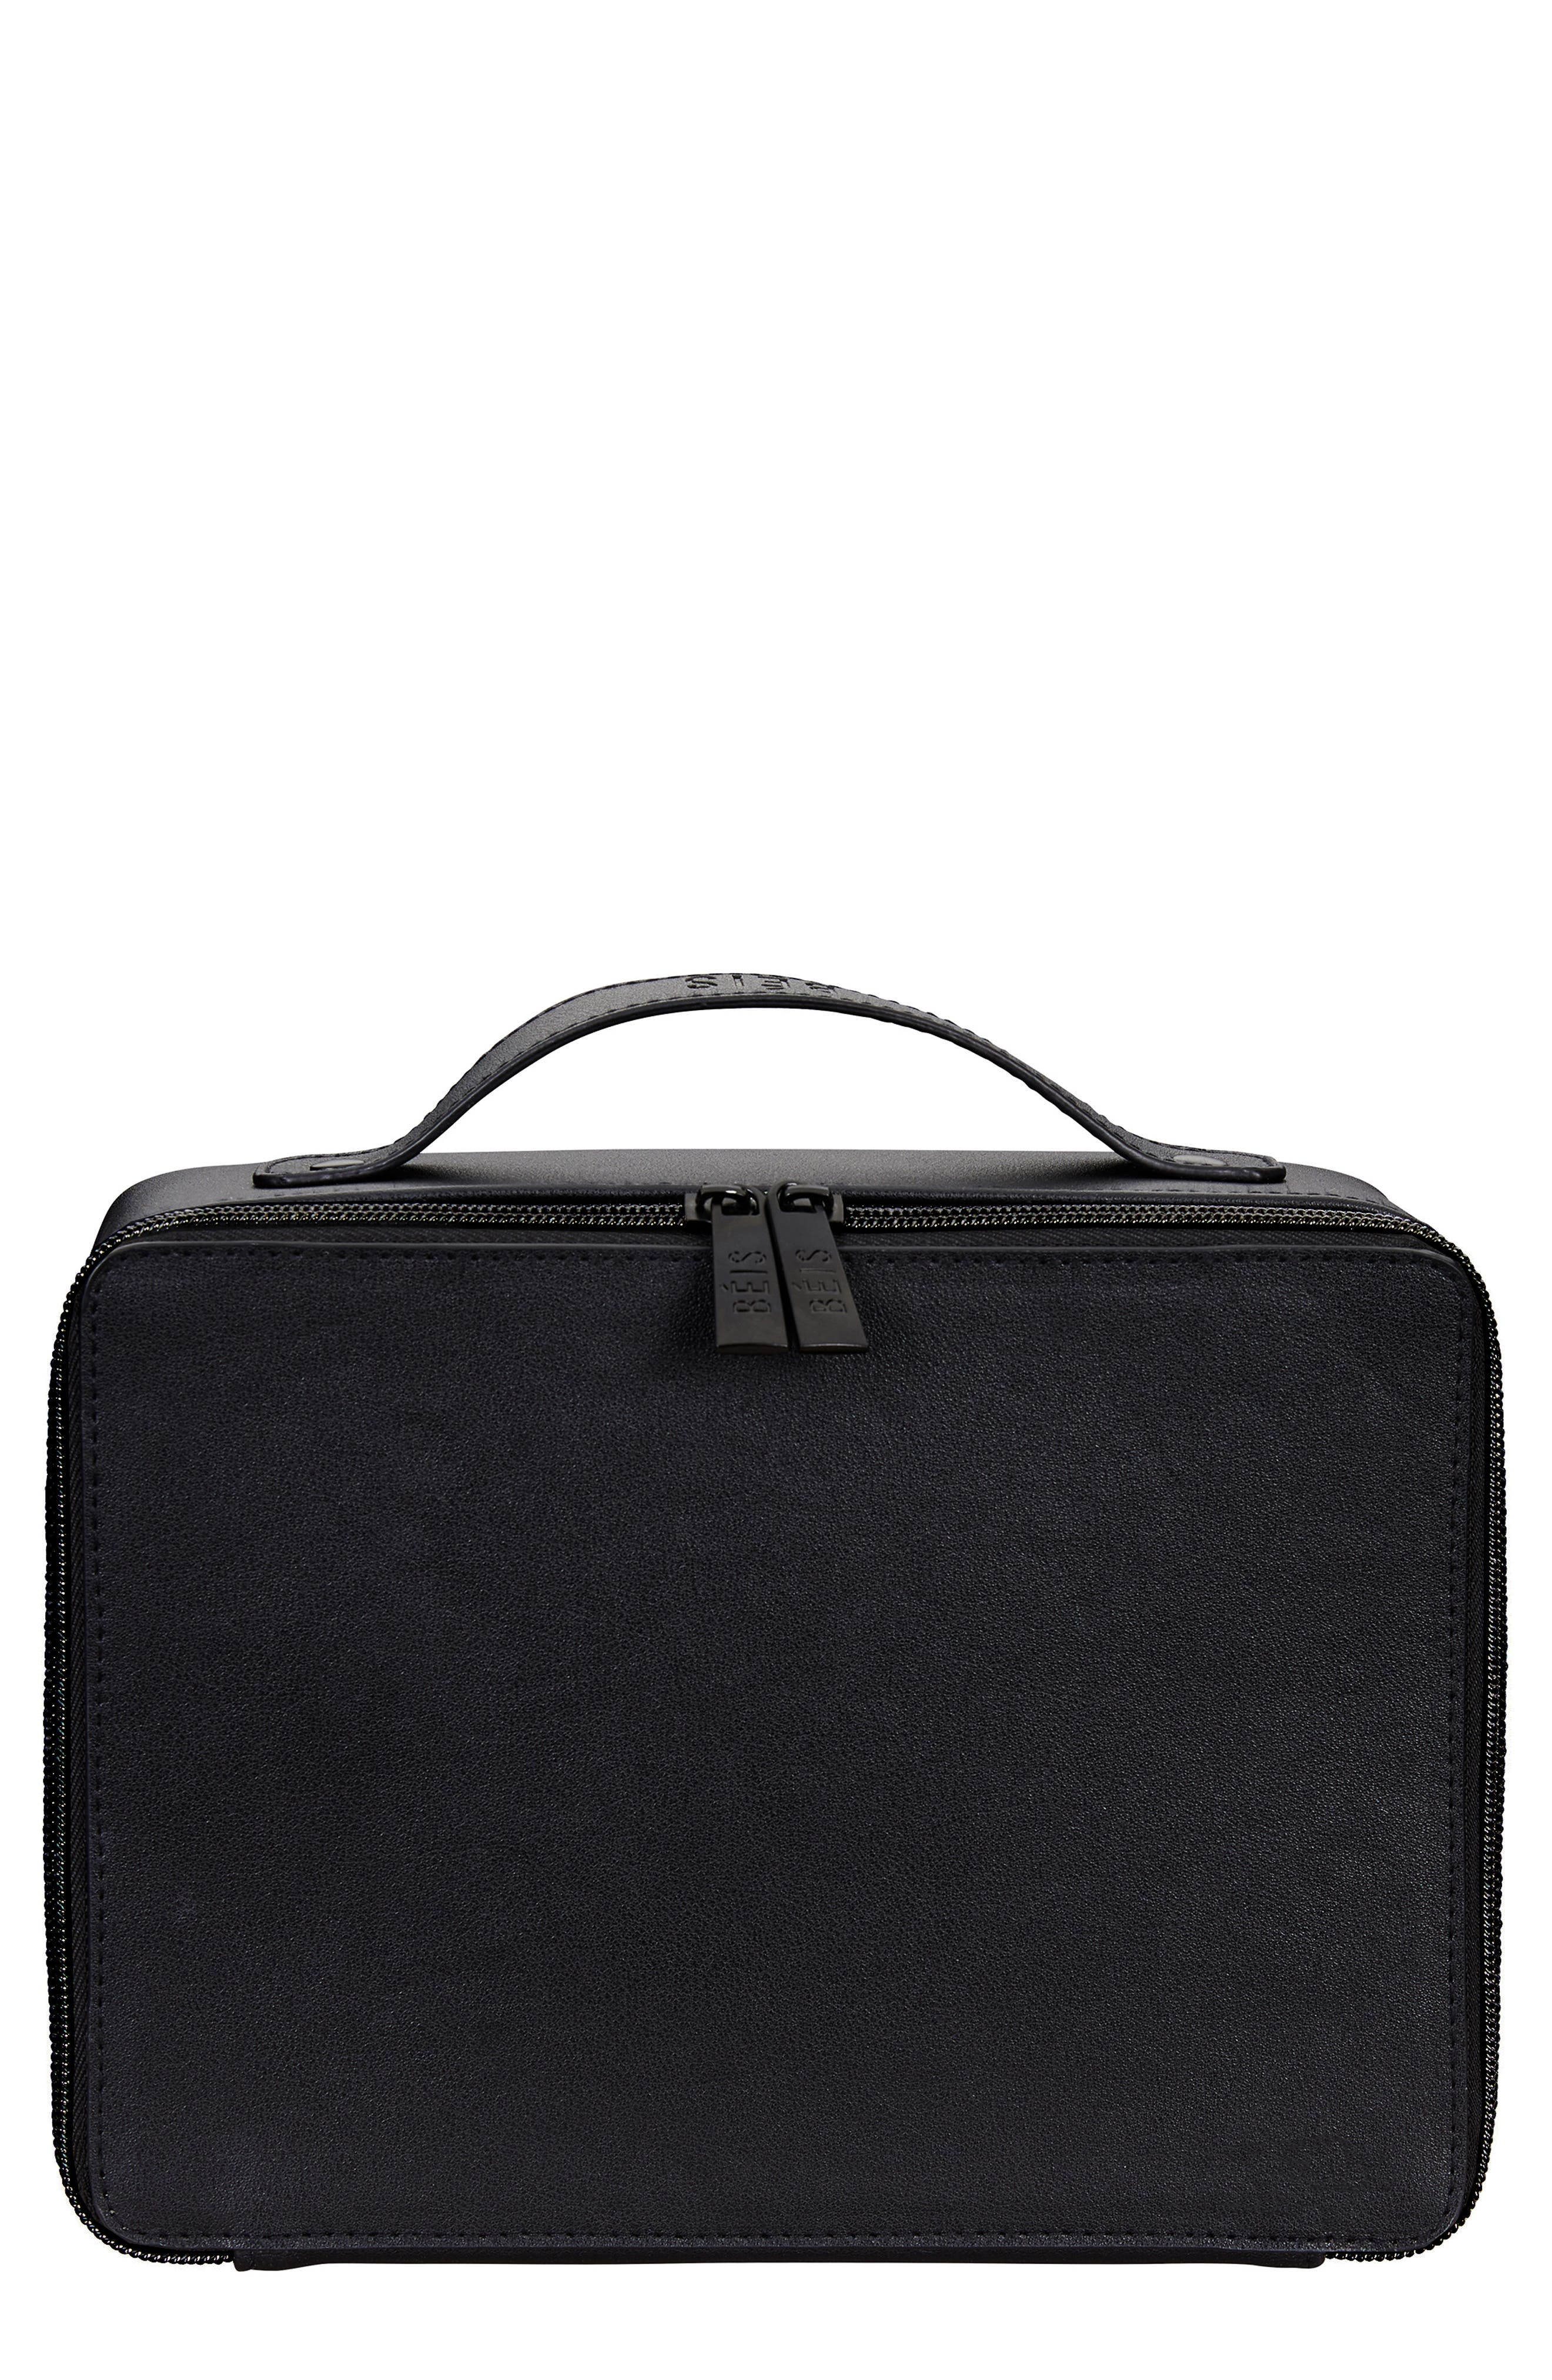 Travel Cosmetics Case by Beis